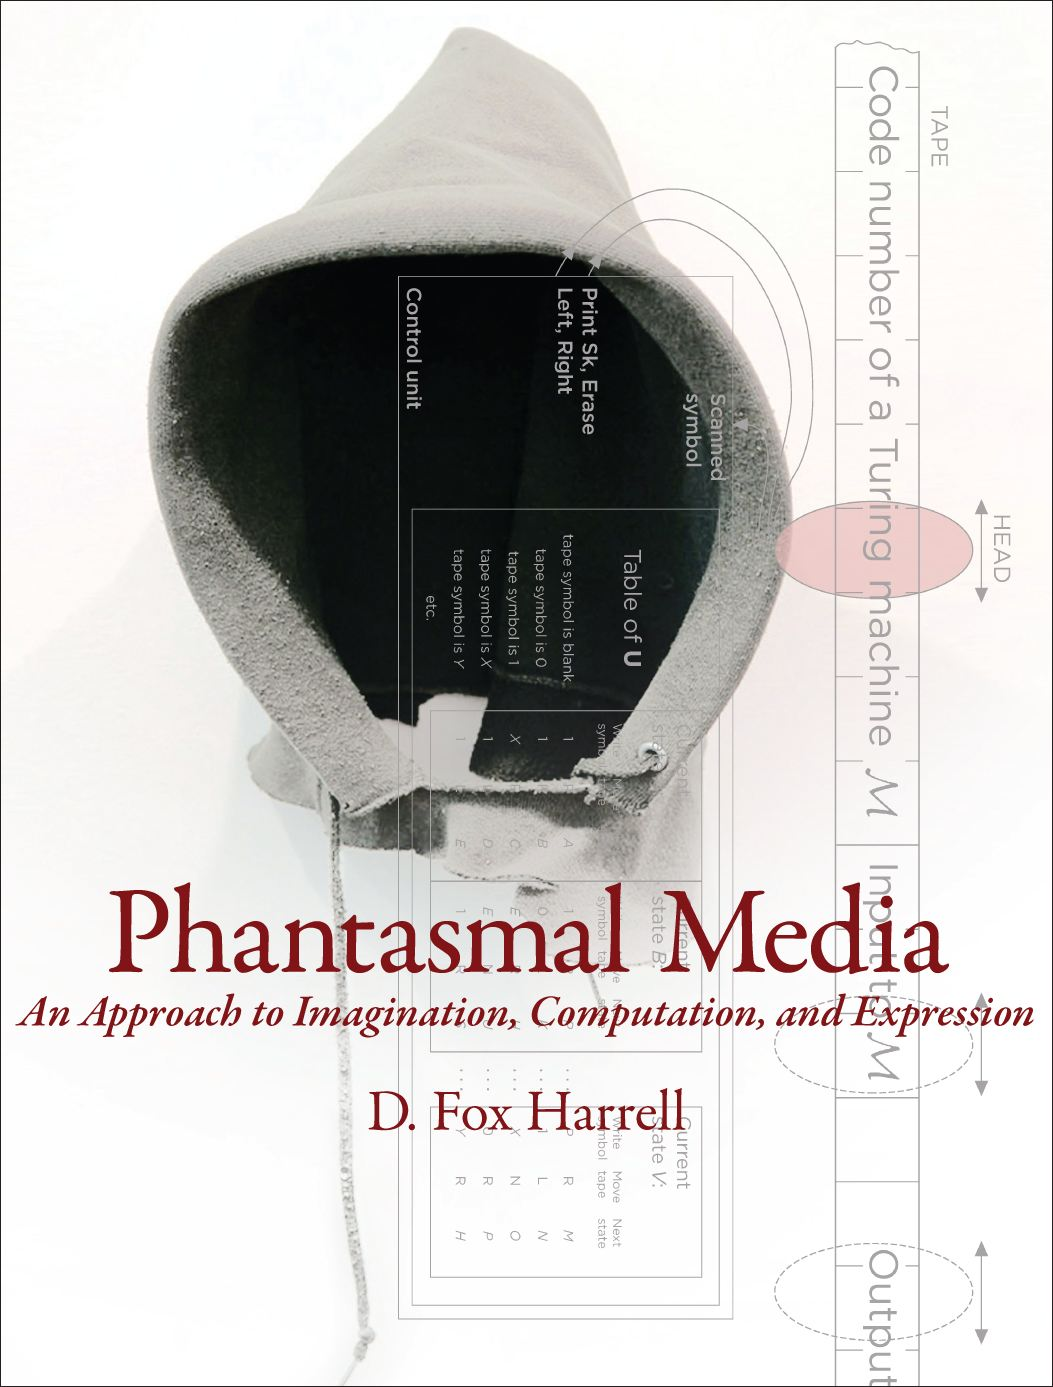 Phantasmal Media